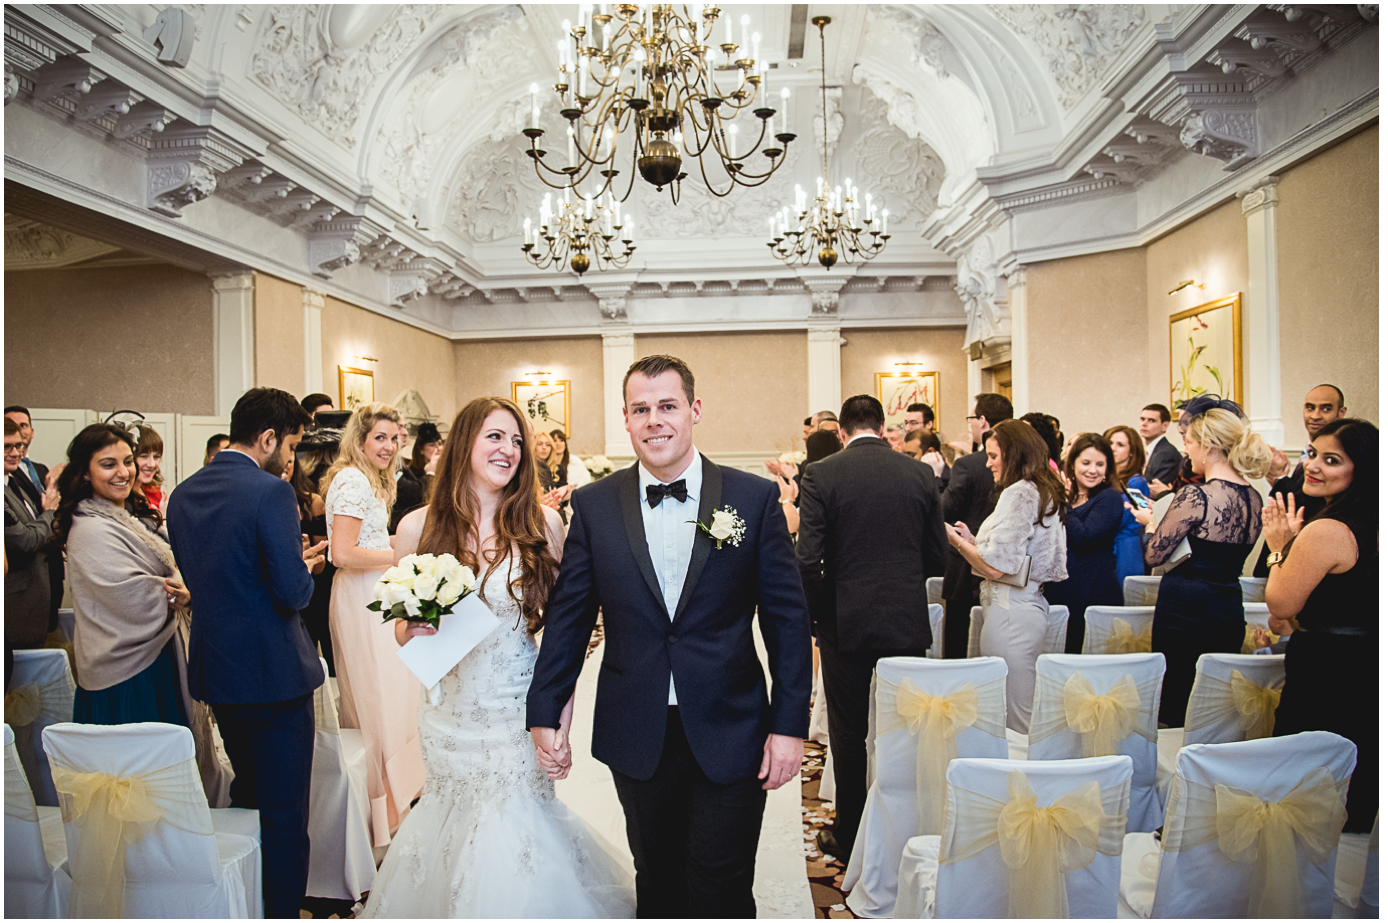 41 - Esmat and Angus - St. Ermin's Hotel London wedding photographer